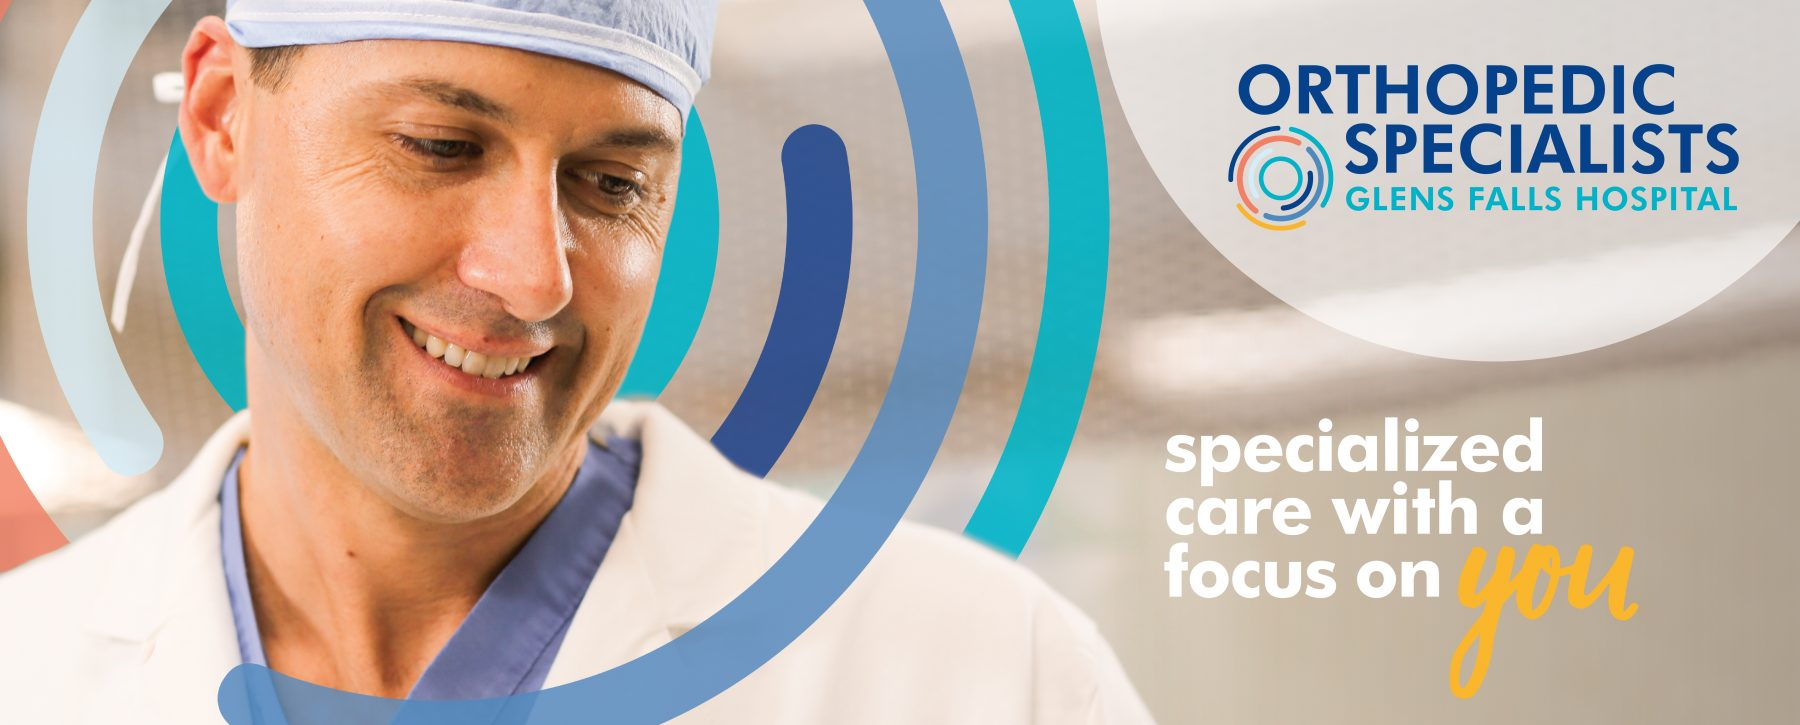 Orthopedic specialists glens falls hospital - specialized care with a focus on you